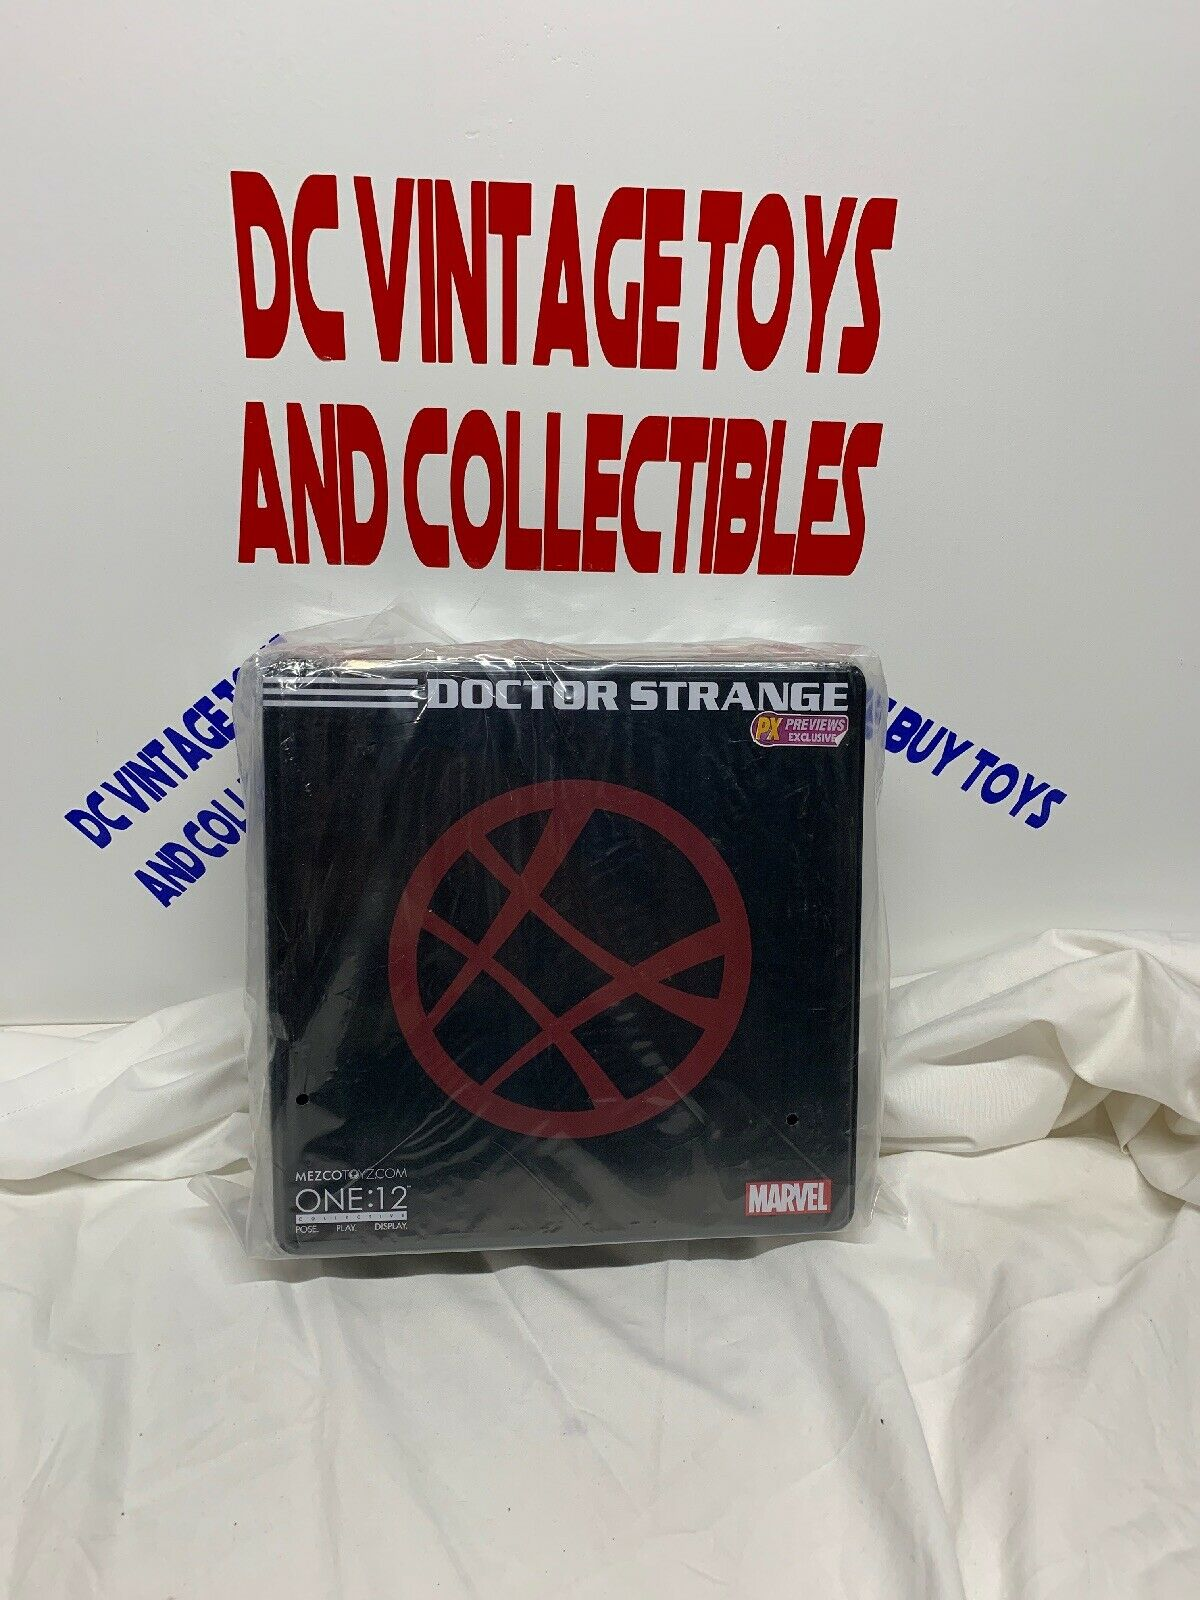 Mezco One 12 Collective Marvel PX Exclusive DOCTOR STRANGE Figure, Dented Box